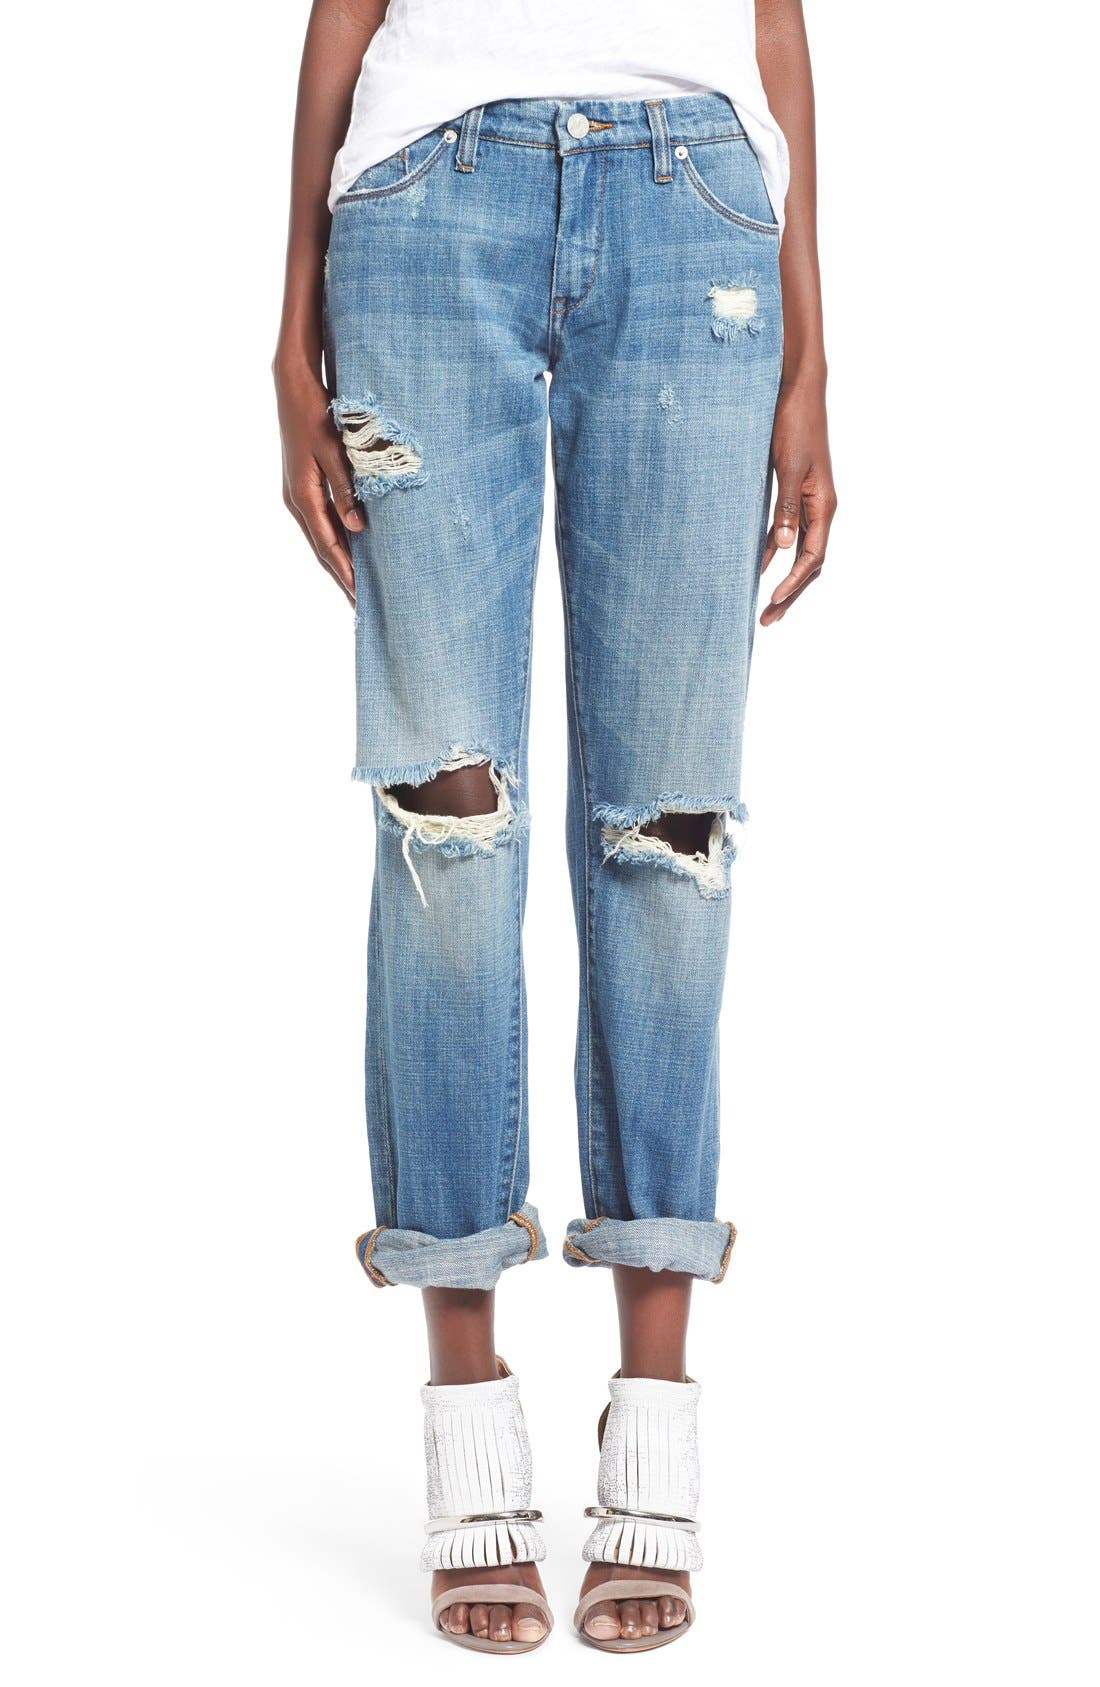 'Meant to Be' High Rise Distressed Boyfriend Jeans,                         Main,                         color, Tomboy